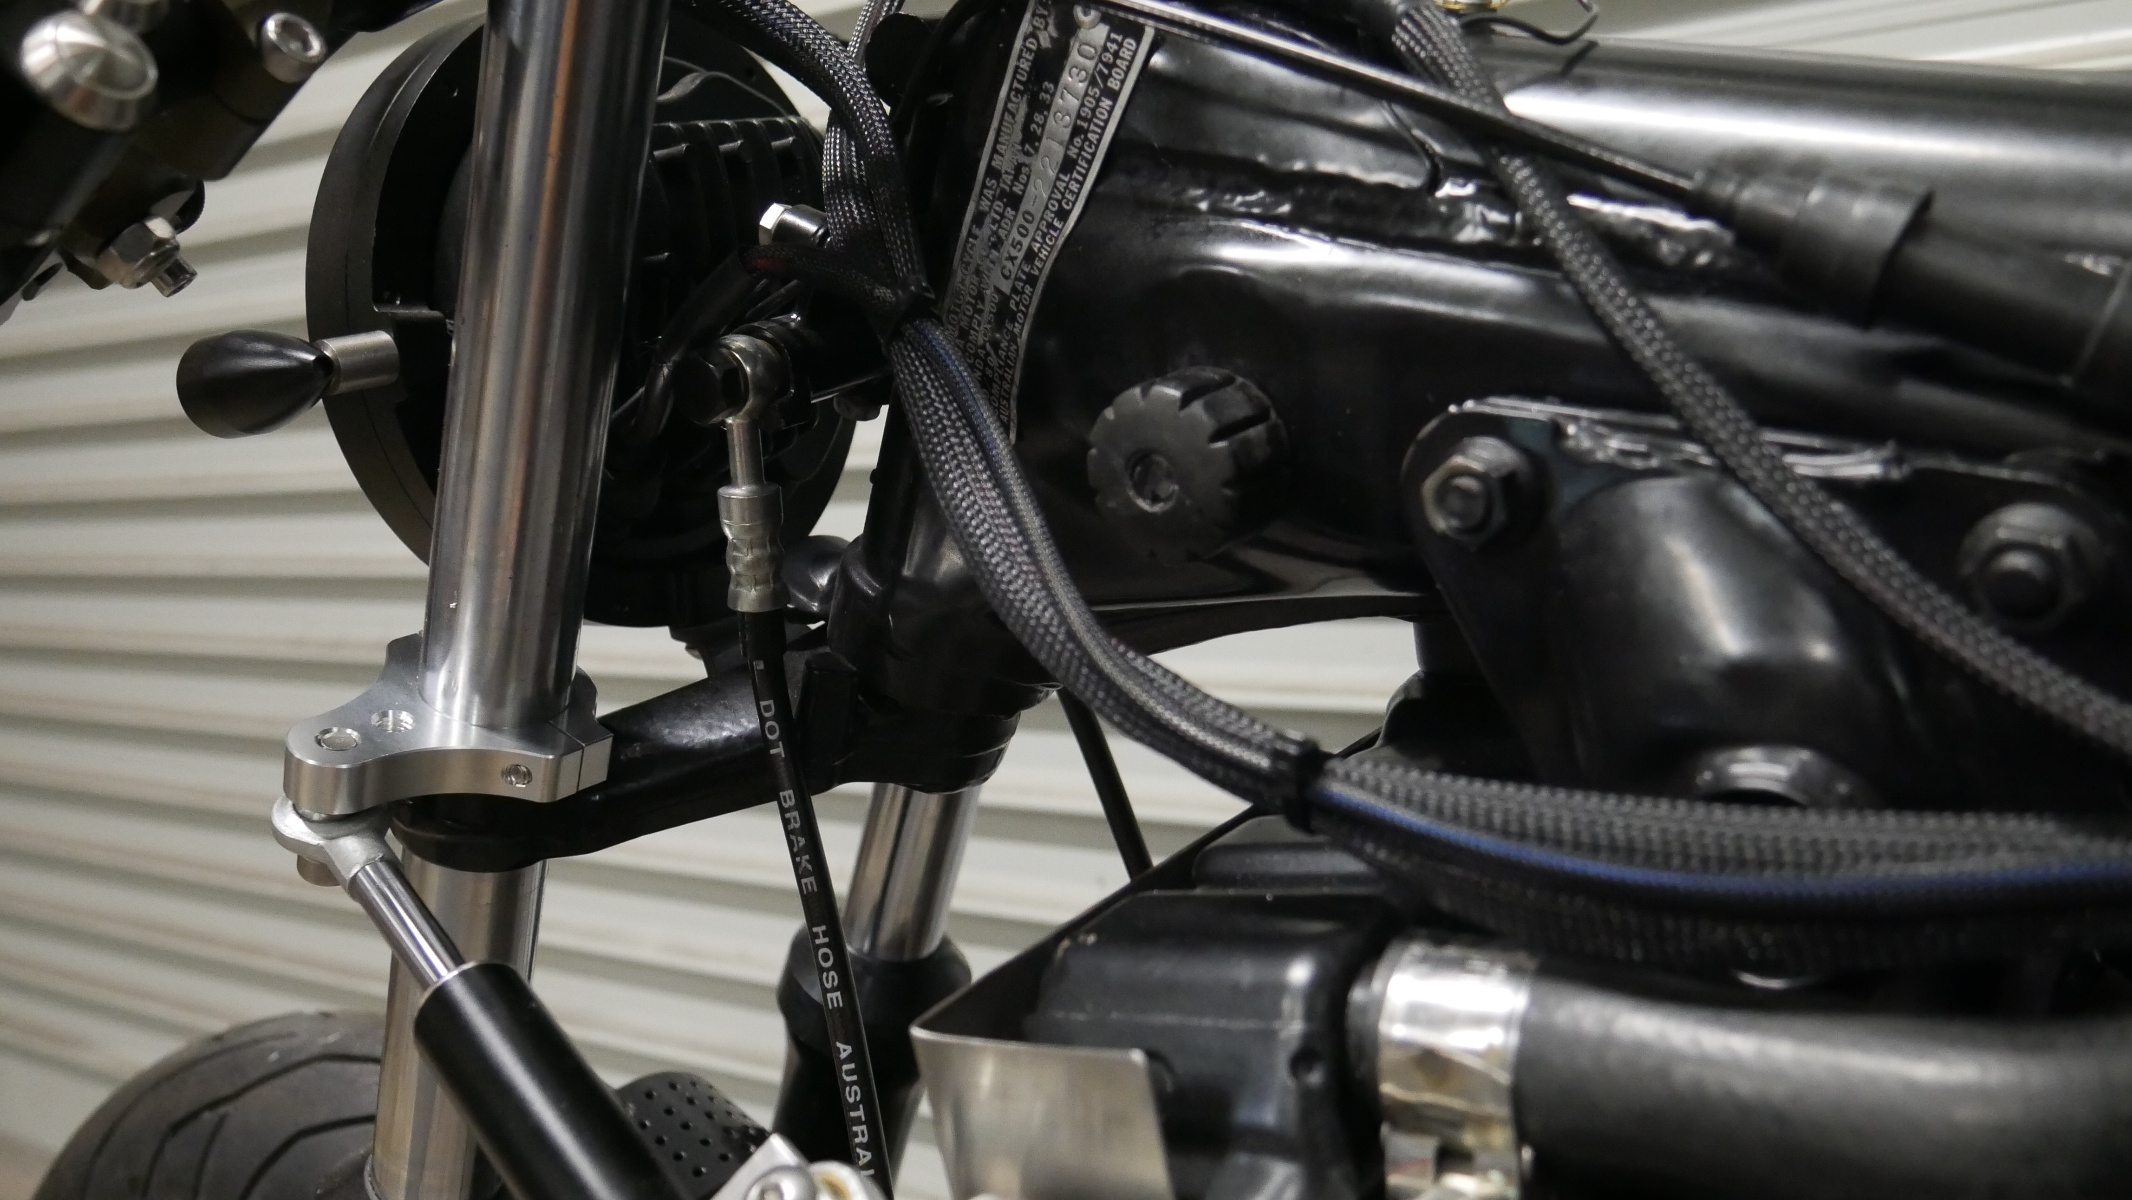 Top 5 wiring mistakes to avoid when wiring your custom bike. Cx Front Signal Wiring Diagram on cx500 turn signals, 2012 honda cr-v wire diagram, cx500 speedometer, cx500 headlight, cx500 engine,